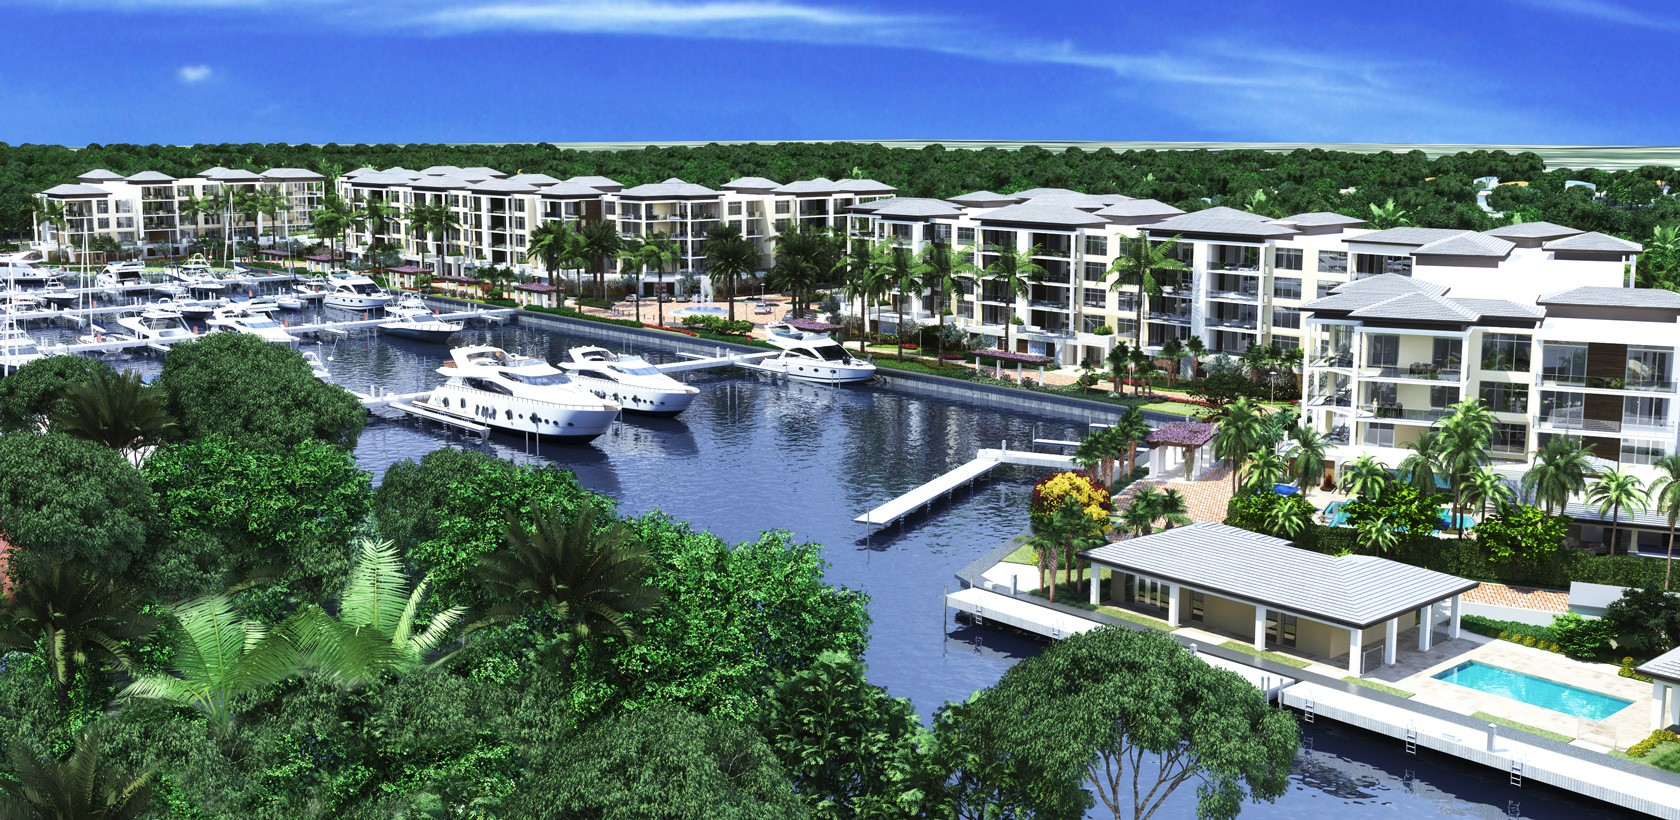 Azure Palm Beach Gardens. New waterfront luxury condos for saleNew ...